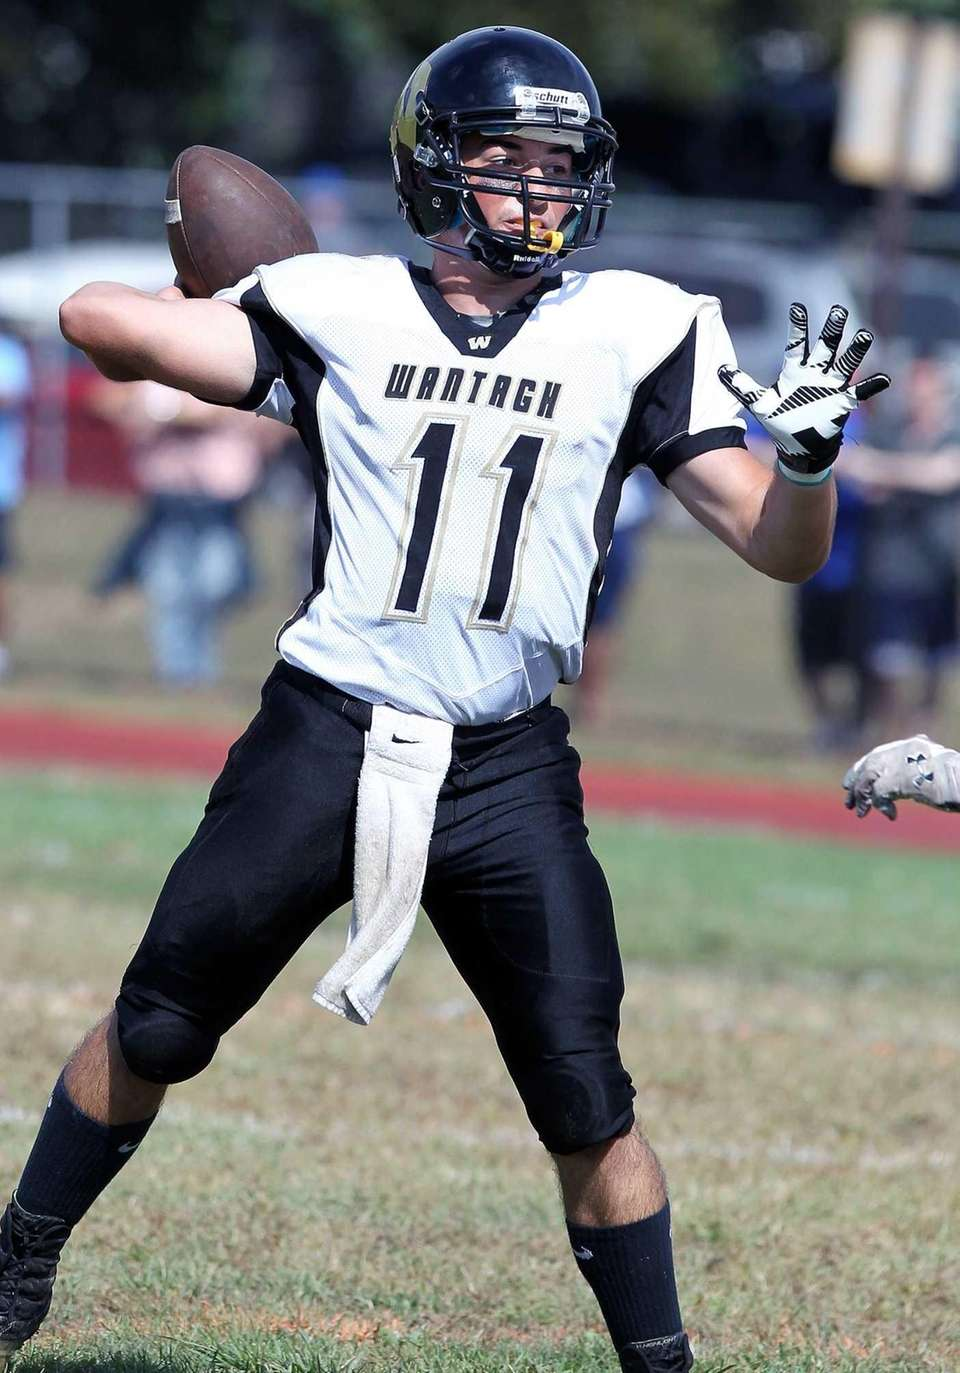 Wantagh quarterback Stephen Killard looks to pass against